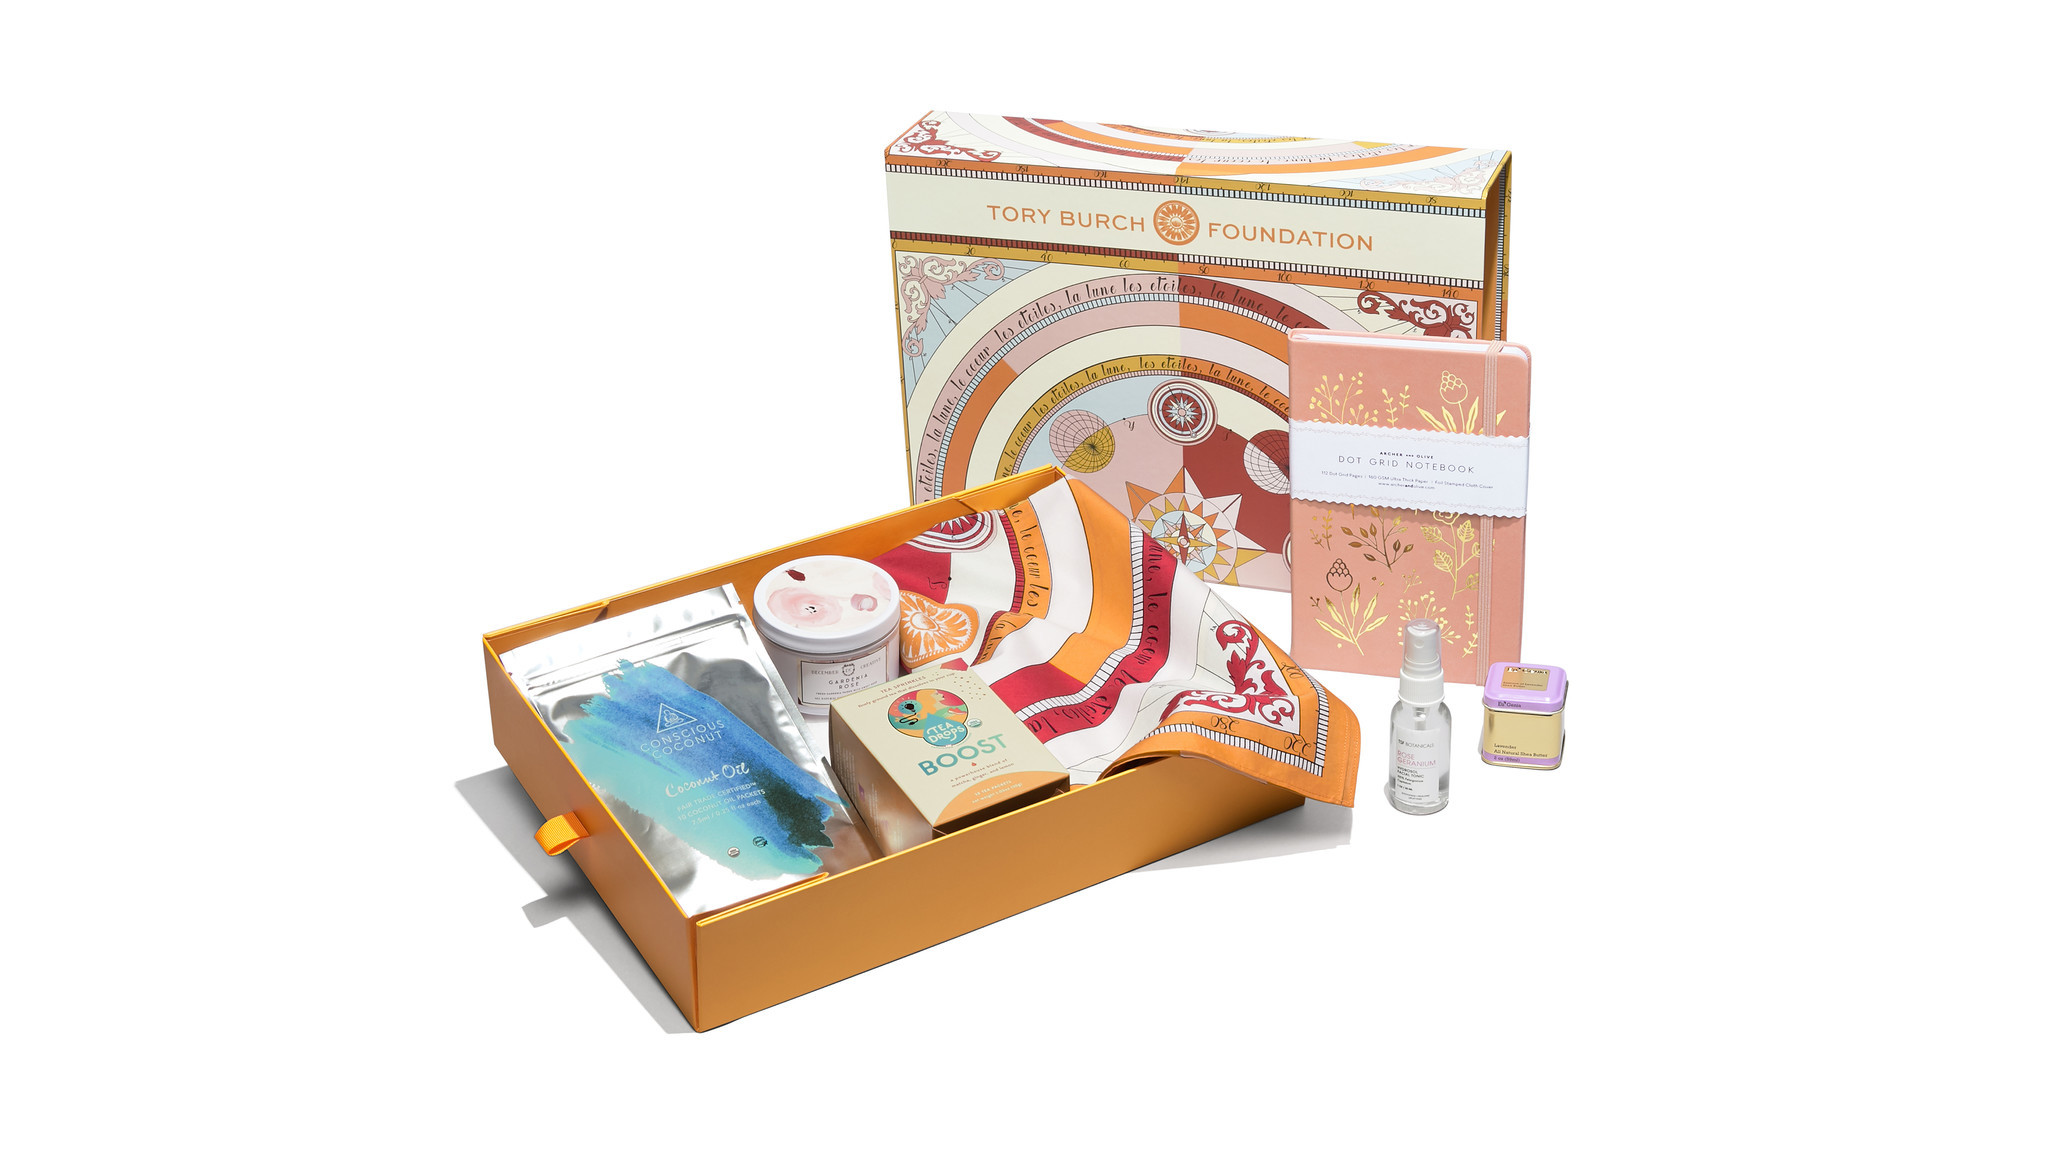 Tory Burch Foundation Seed Box contains a silk scarf, shea butter, facial tonic, tea sprinkles, a ca